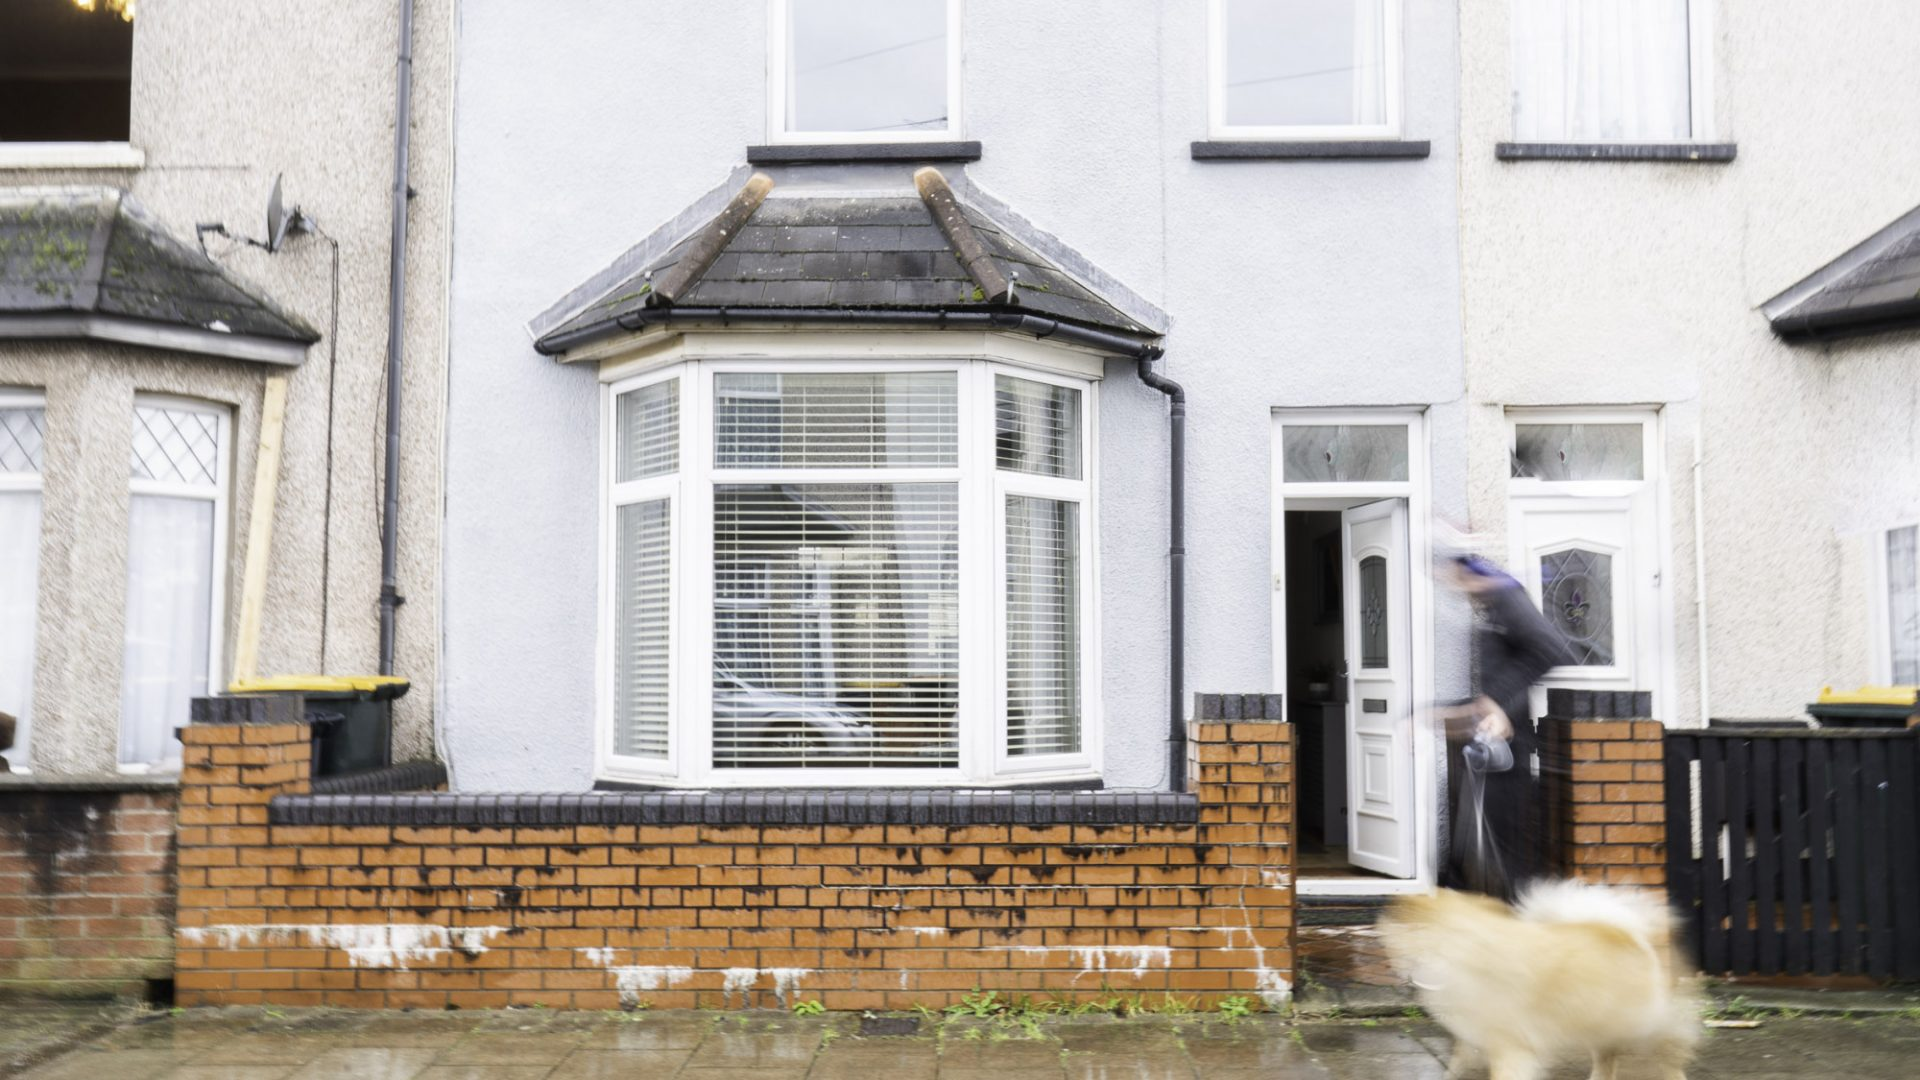 Walsall Street, Newport for sale with Mr and Mrs Clarke estate agent